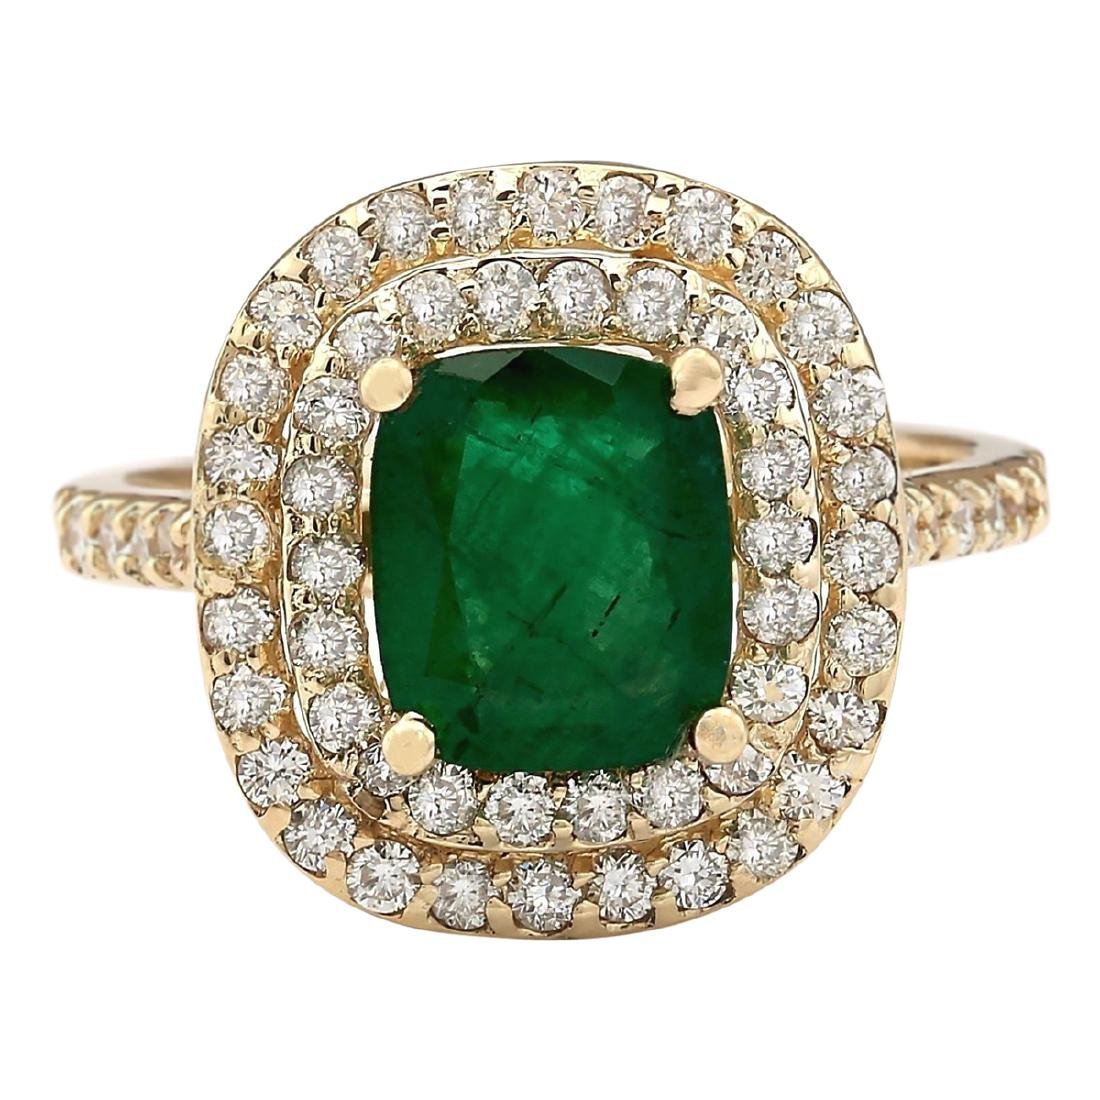 2.88 CTW Natural Emerald And Diamond Ring In 18K Yellow